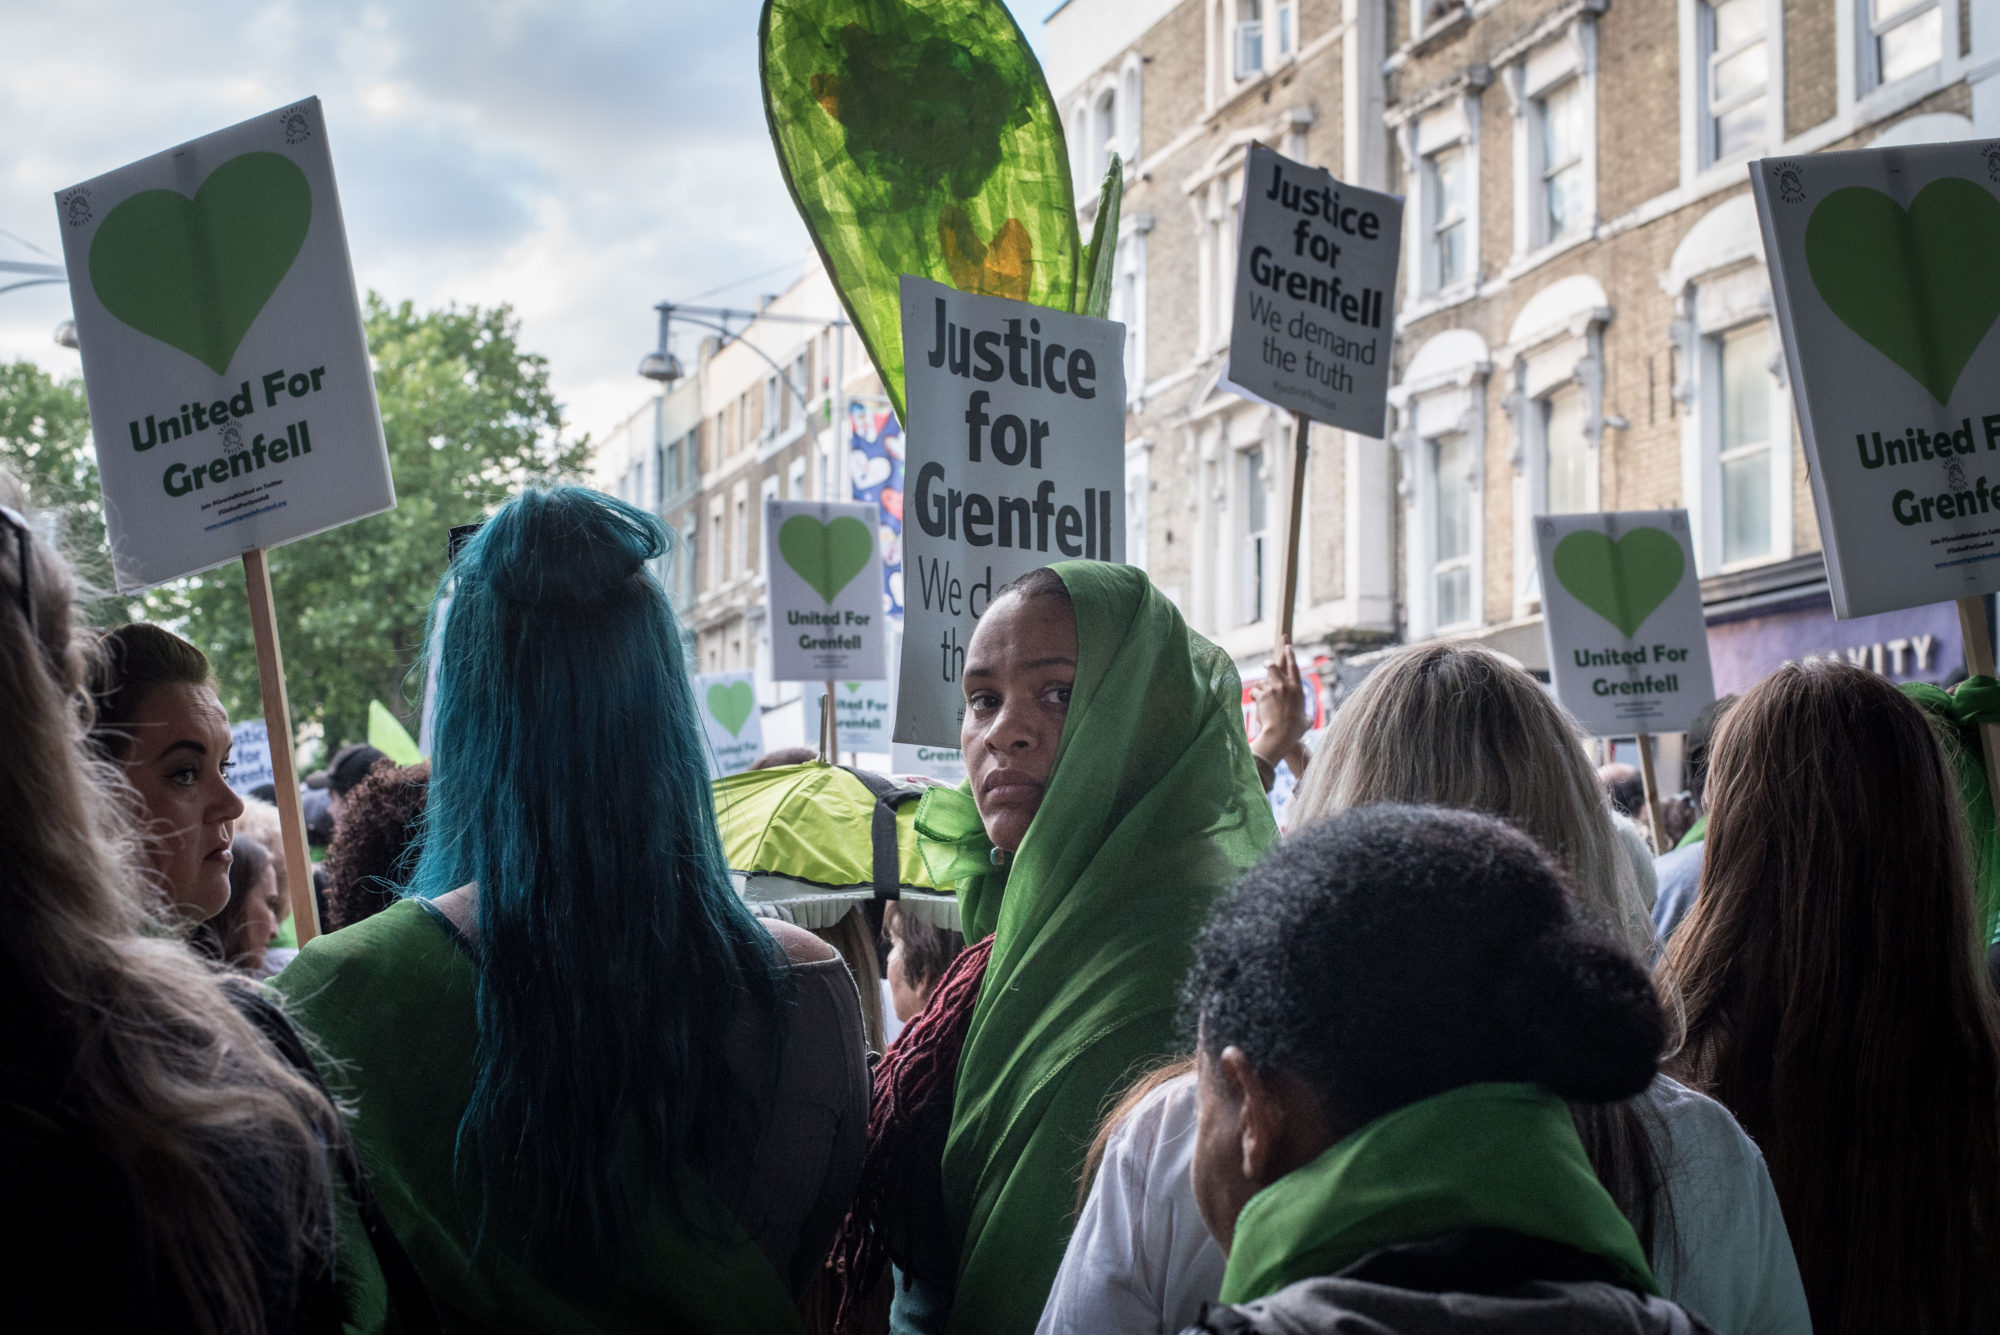 Debbie Humphry, '14th June 2018, Remebering Grenfell 1' (2018)